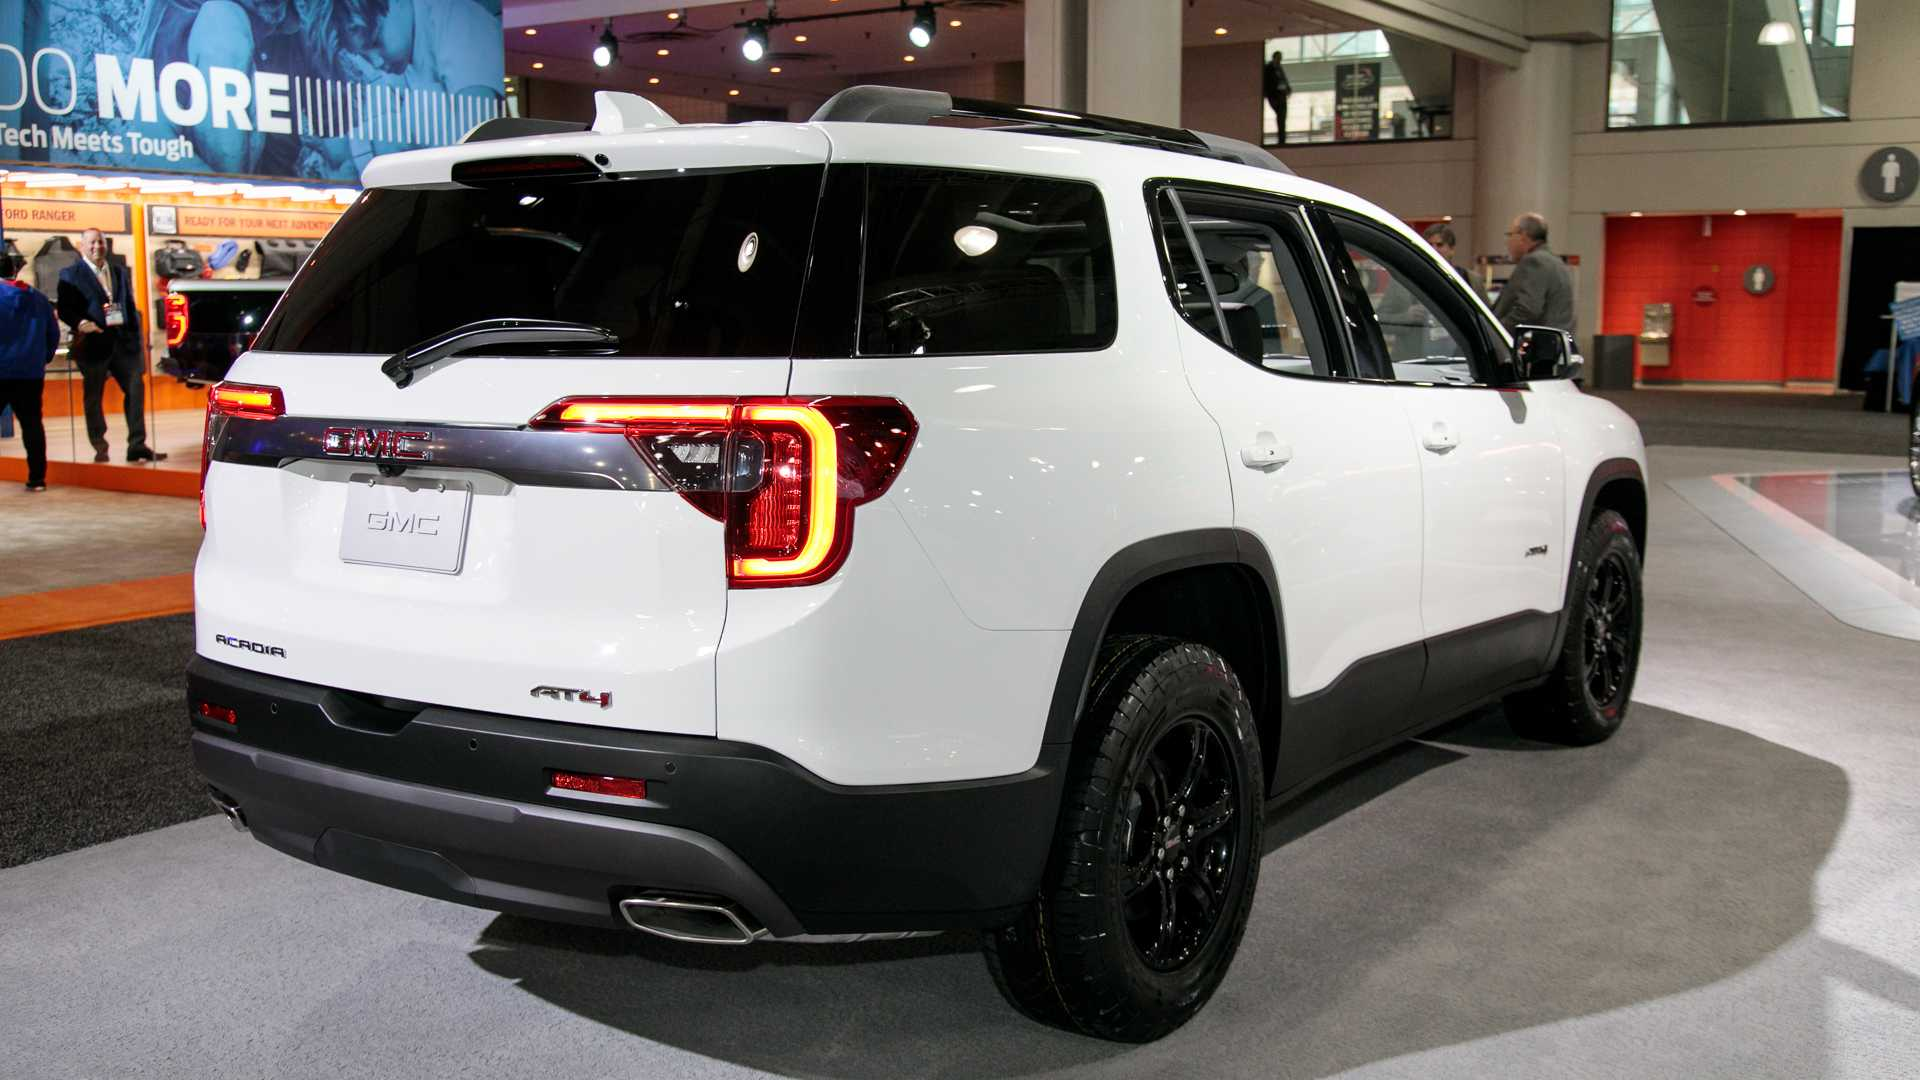 2020-gmc-acadia-live-photos-20.jpg